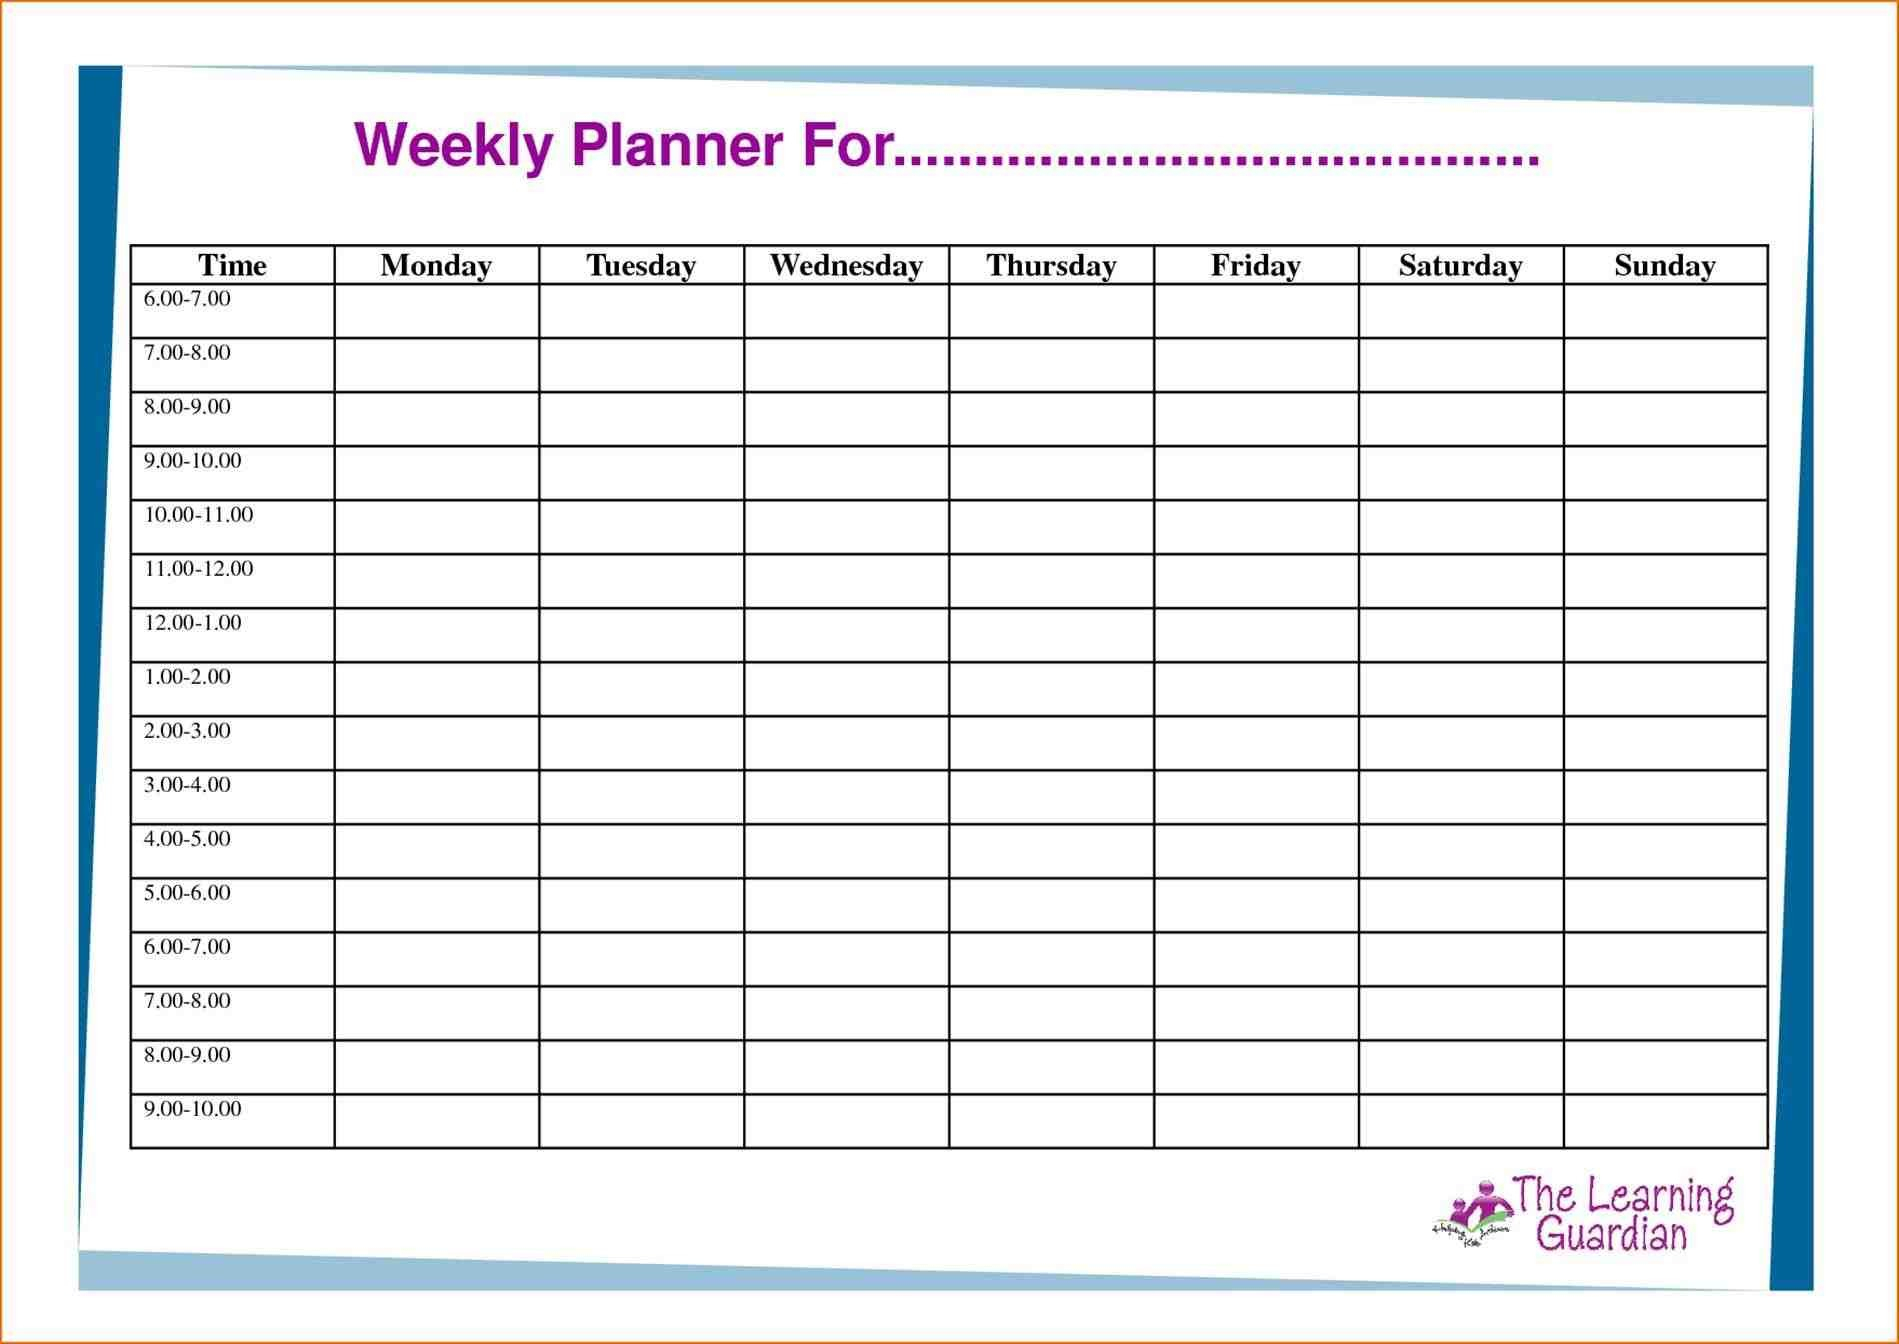 Calendar Planner Template Weekly Schedule And Task Planner Calendar for Weekly Planner Template For Students